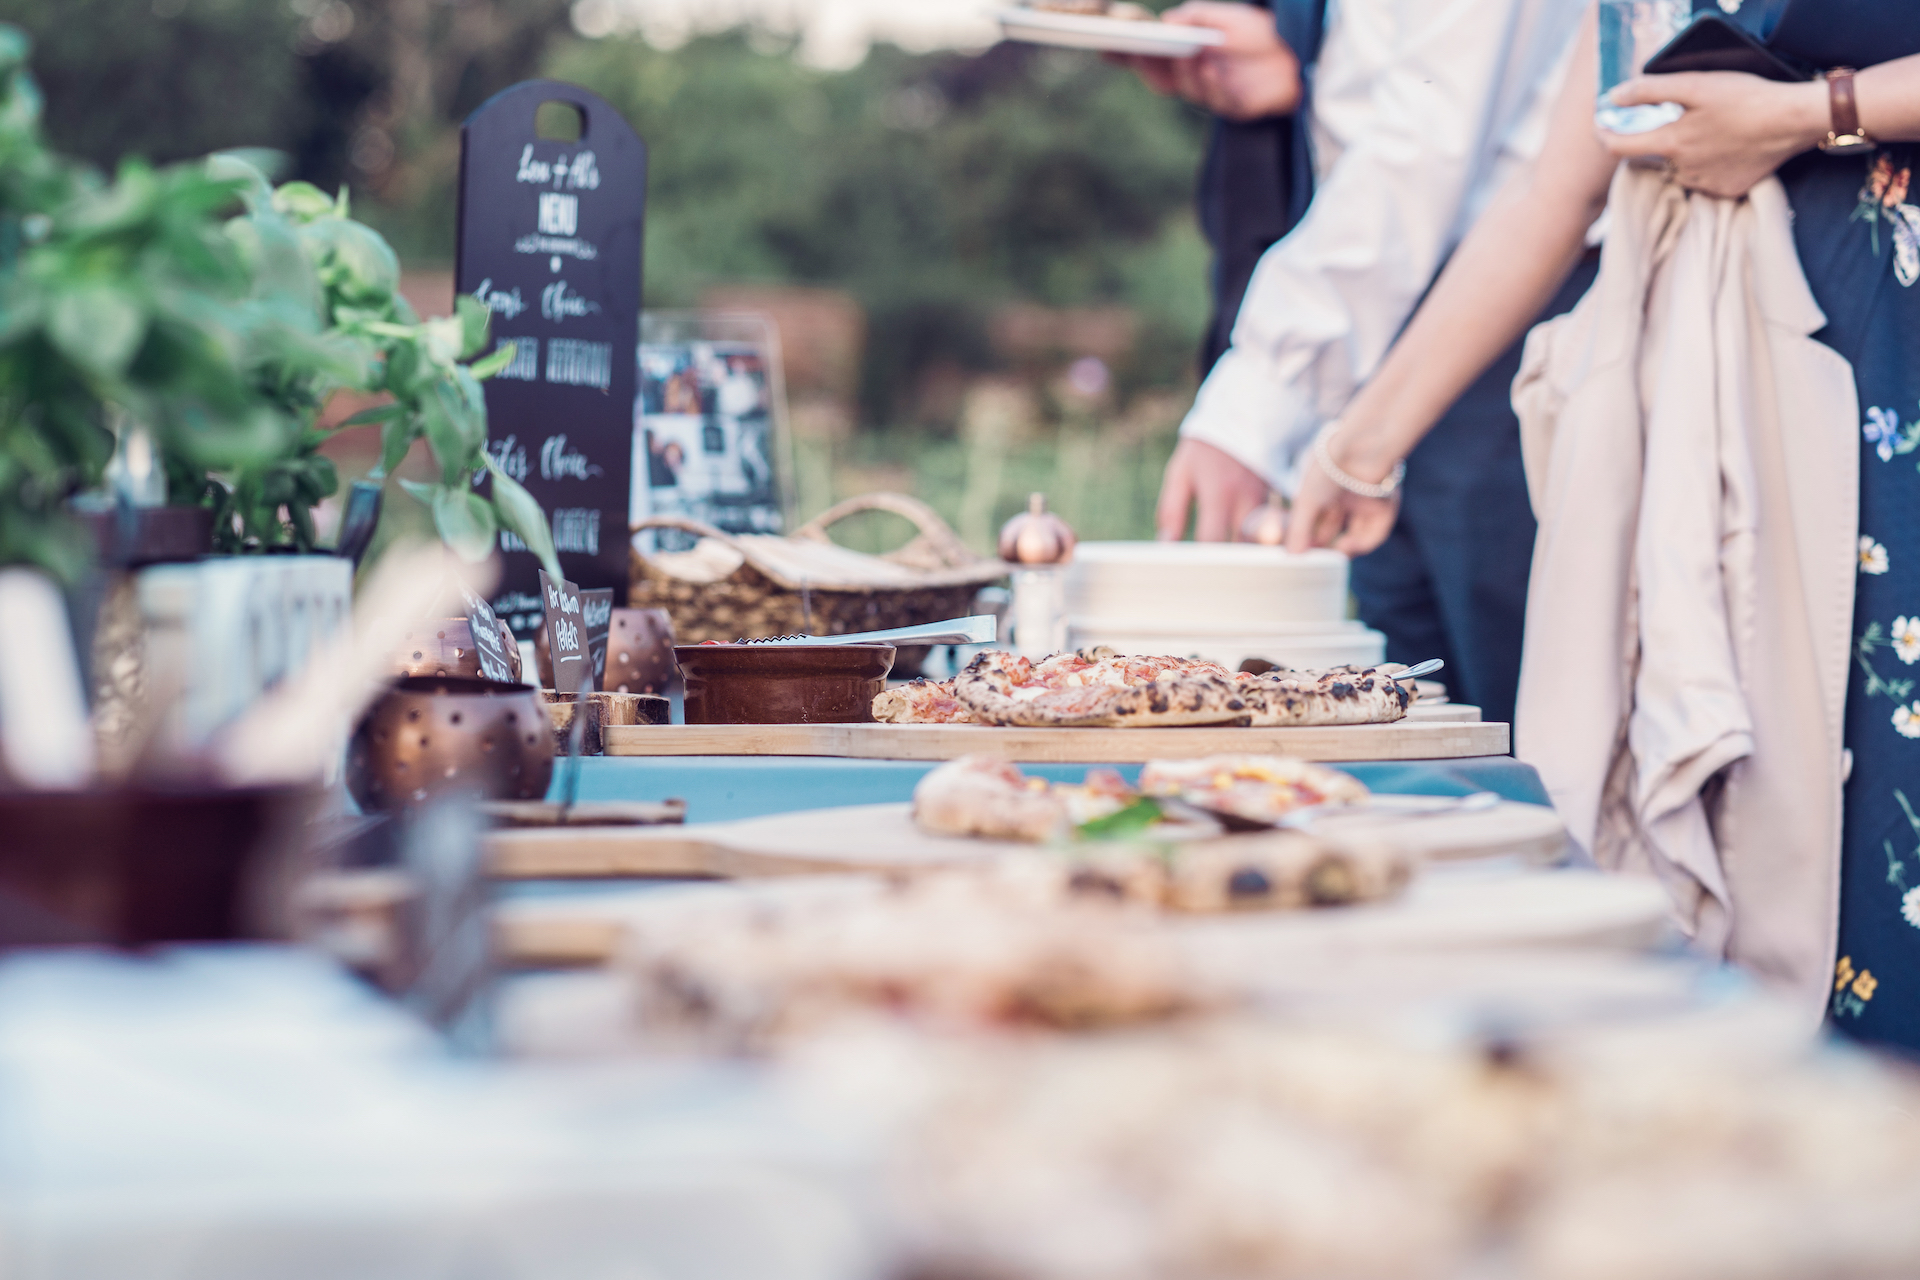 PapaKåta couple Louise & Alex's Sperry Wedding at Elford Hall Garden, Staffordshire captured by Jessica Raphael Photography- Rustic Crust Pizza station evening food